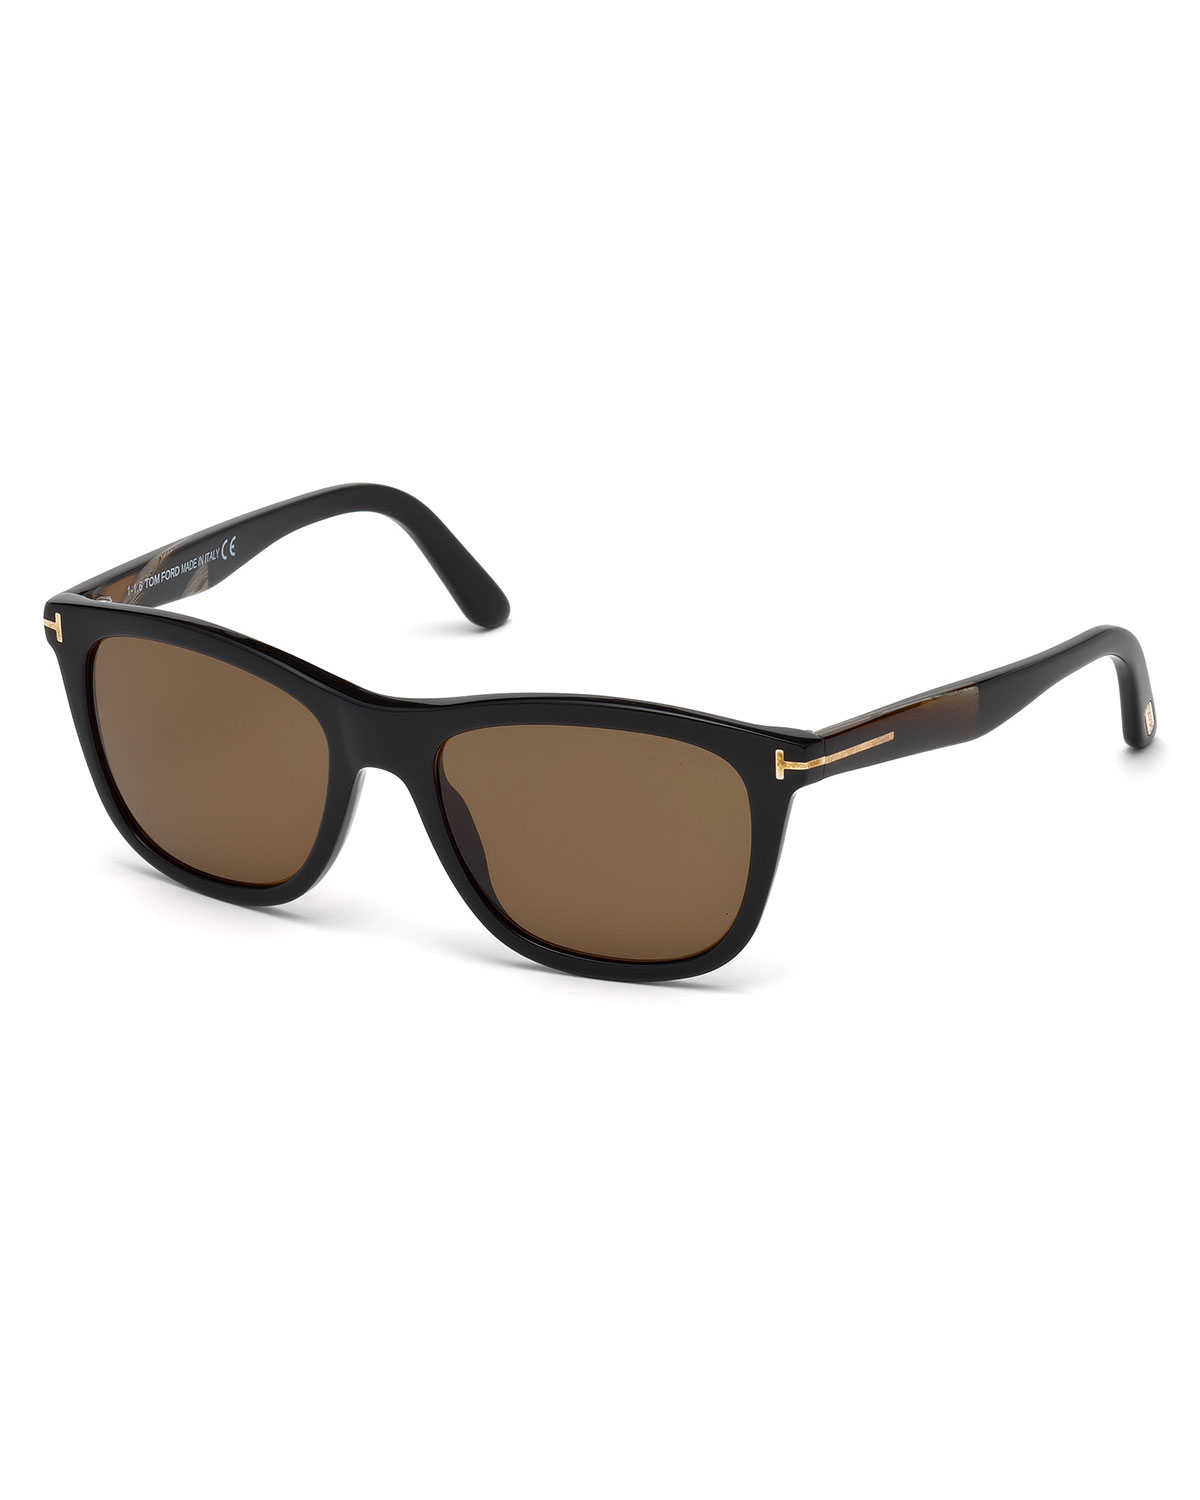 d571f4af46 TOM FORD Andrew Square Shiny Acetate Polarized Sunglasses